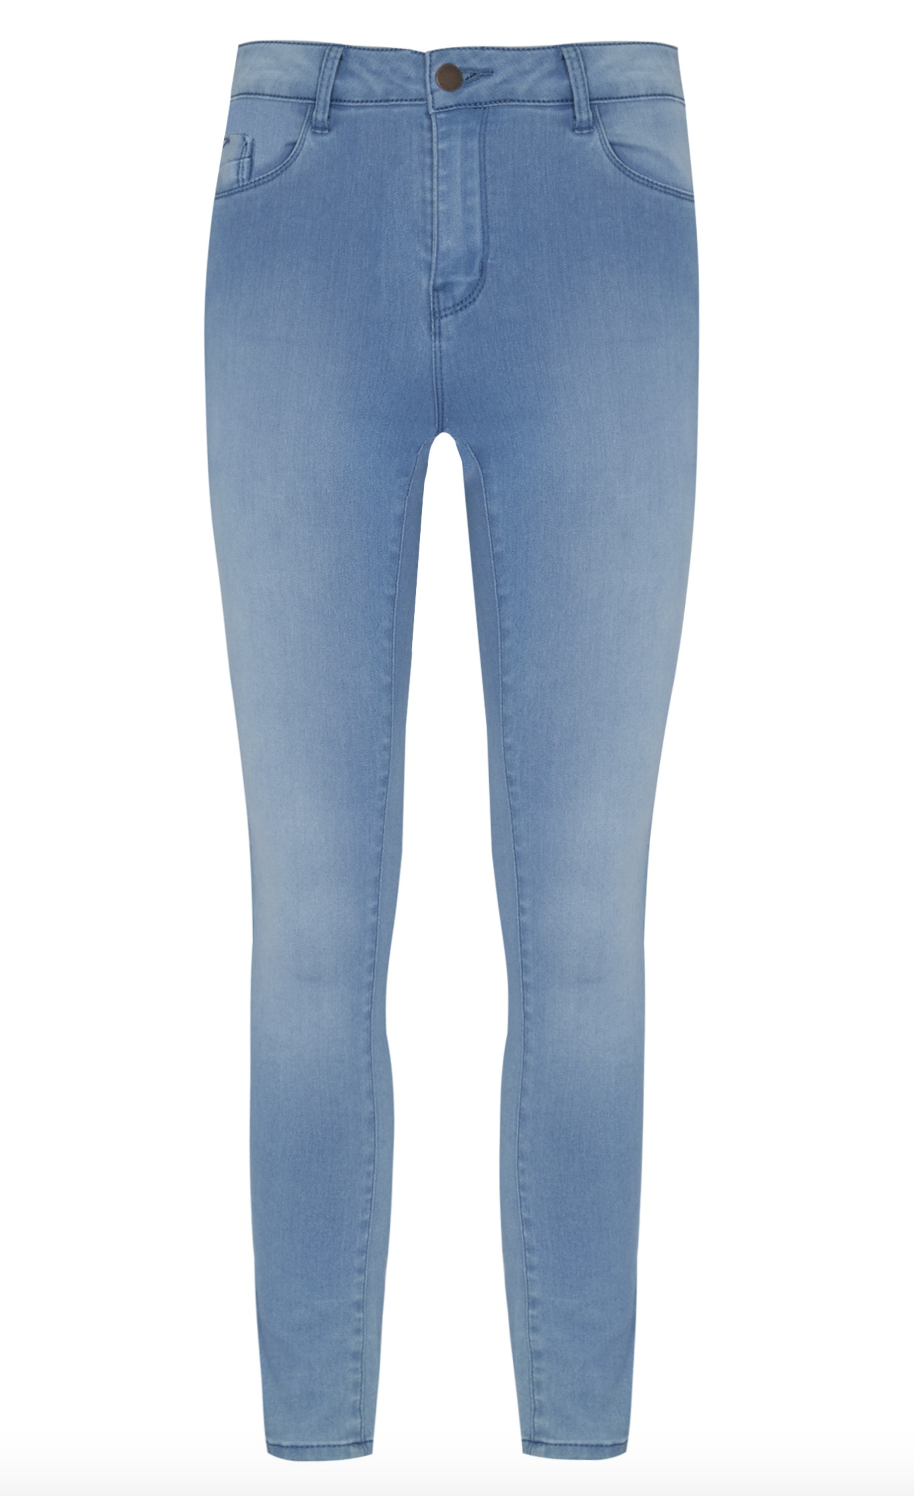 People are claiming these Penneys jeans are better than Topshop's Jonis